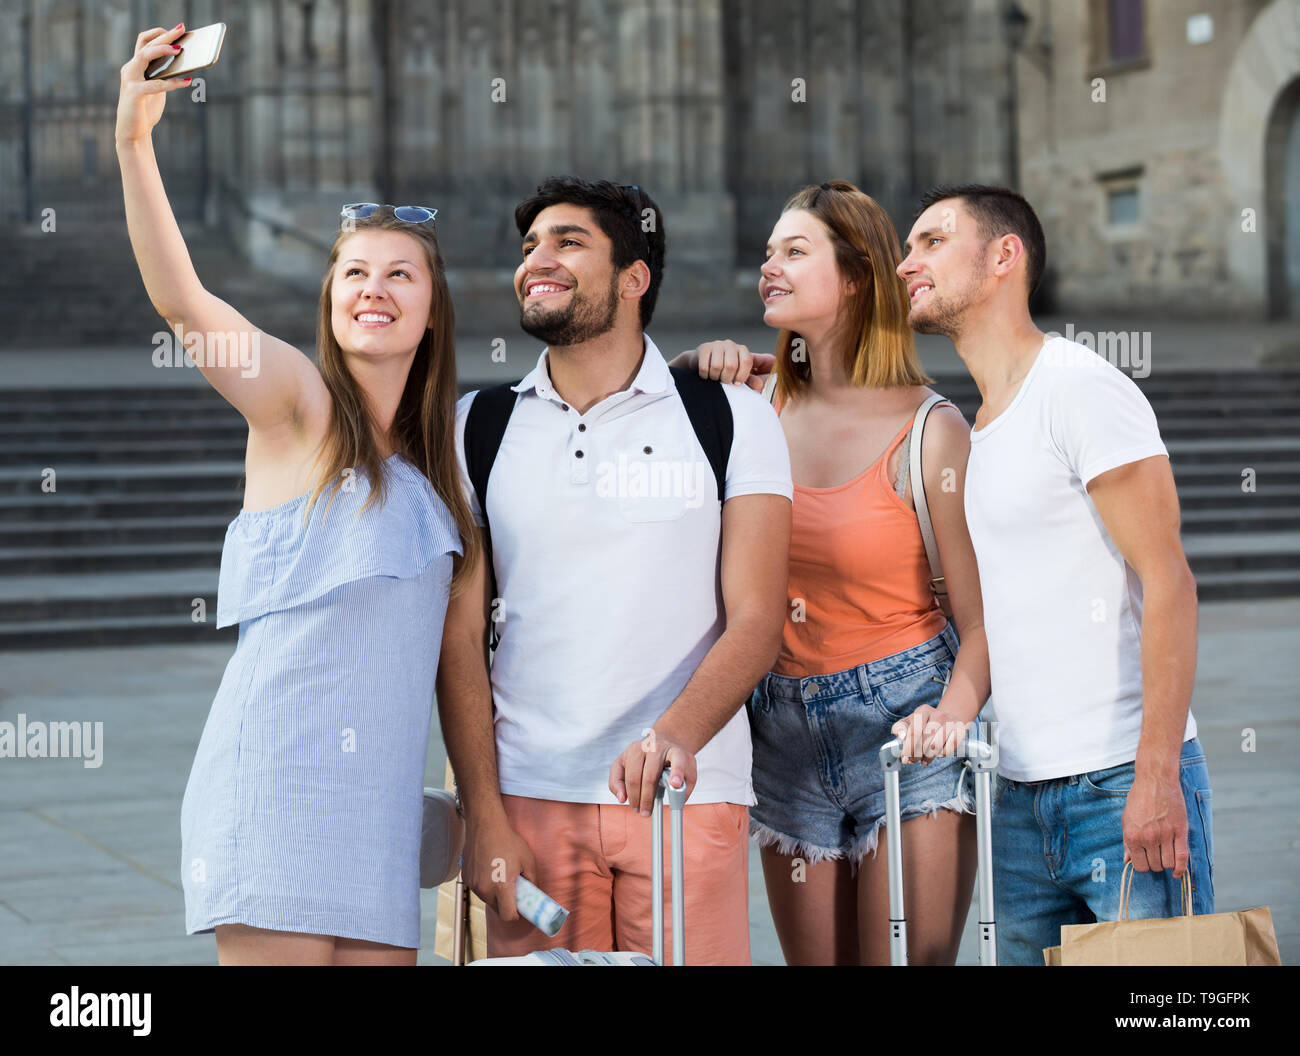 Four happy travellers smiling and making selfie with mobile phone - Stock Image